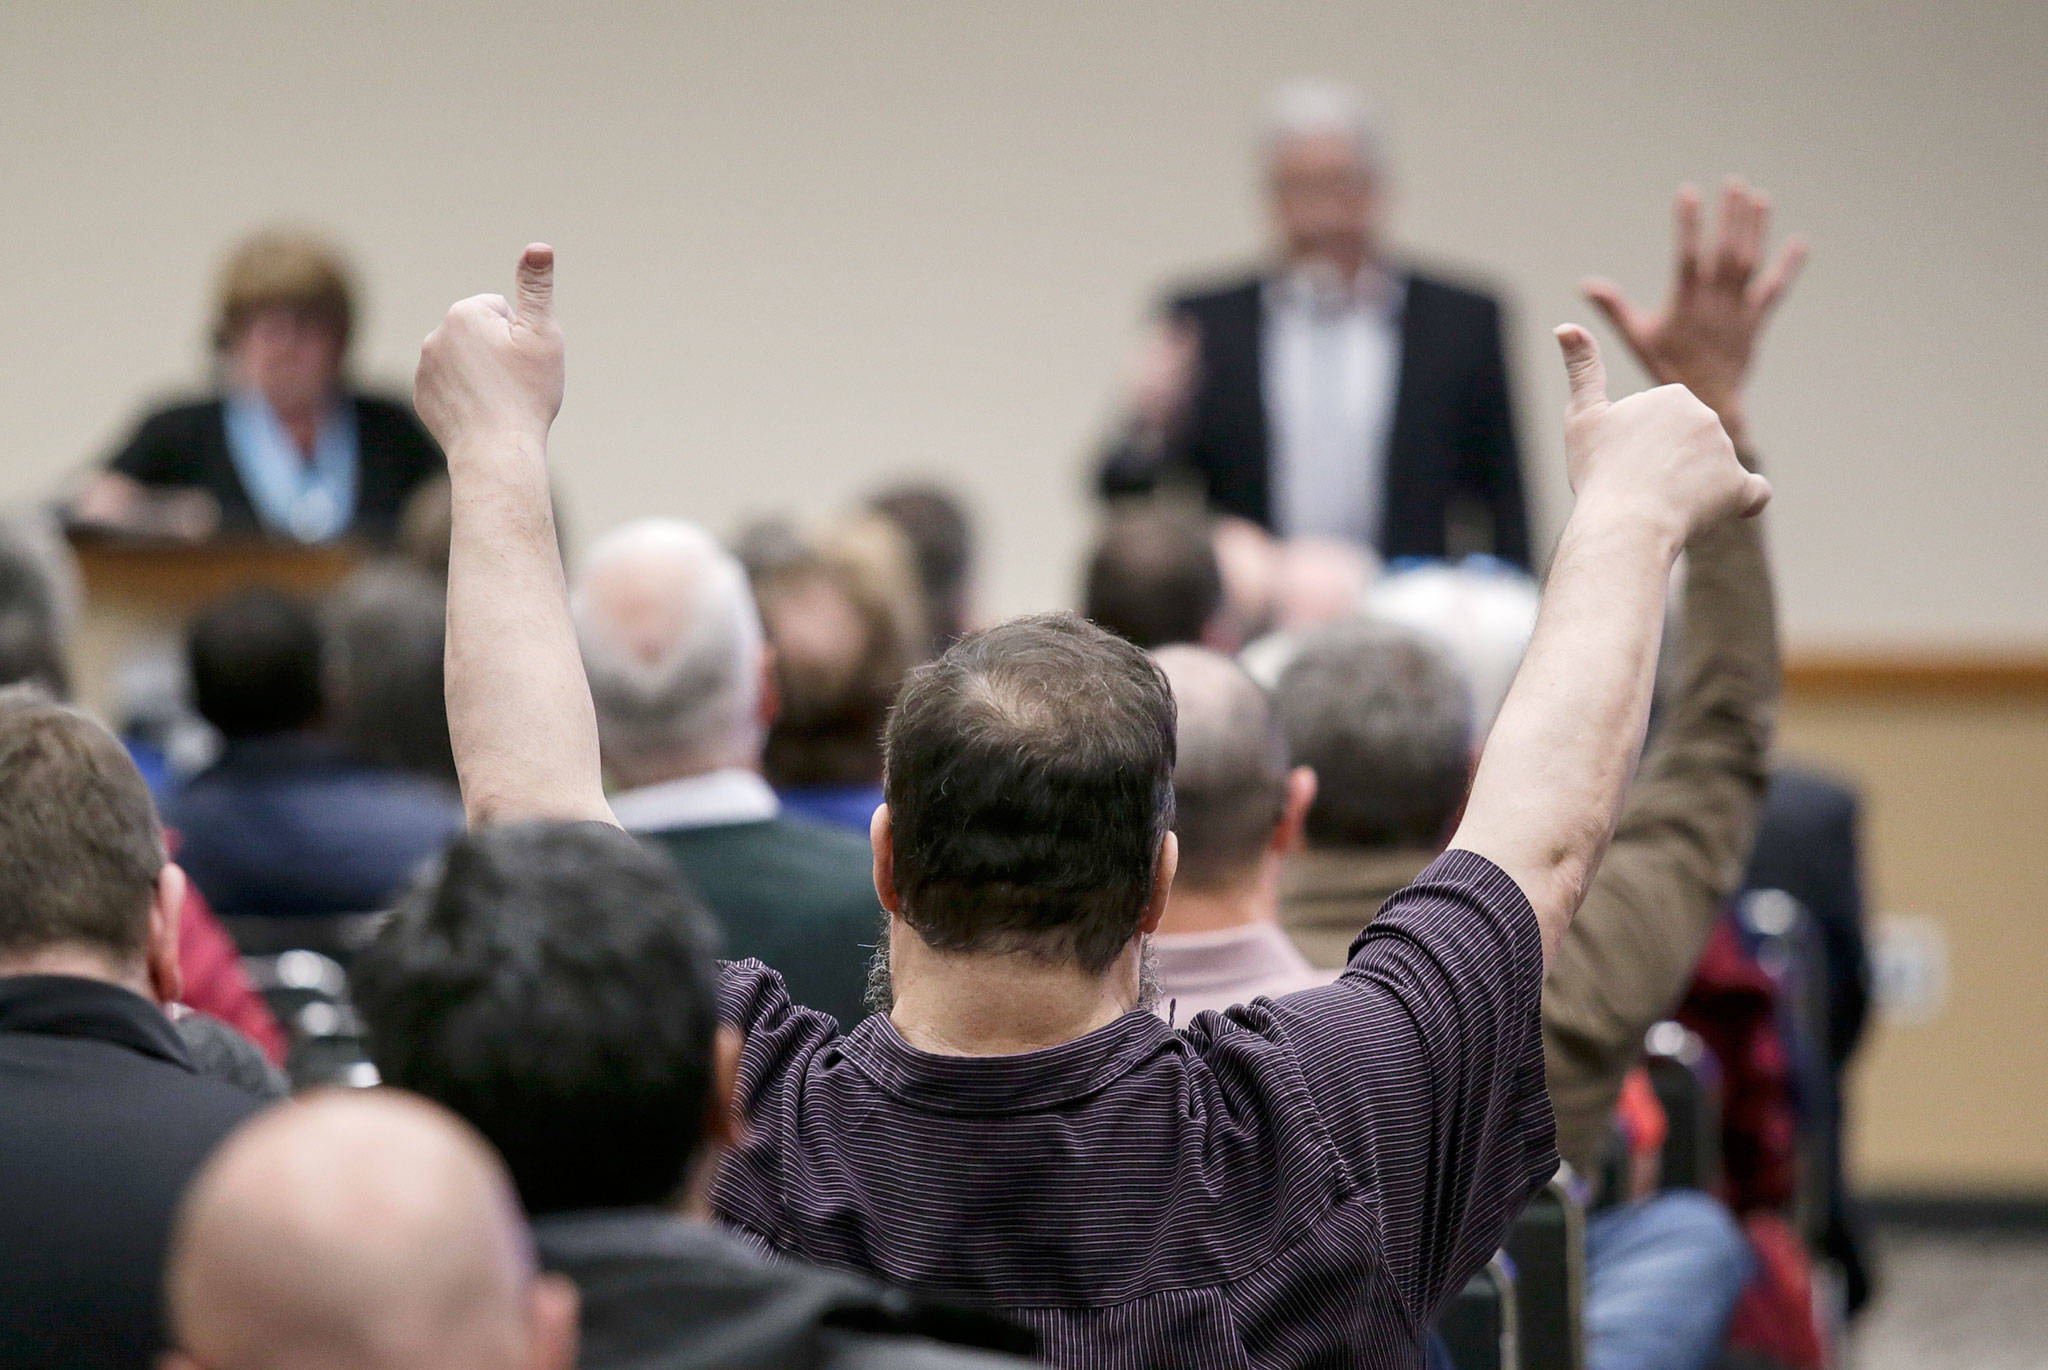 A speaker gets thumbs up during a Federal Aviation Administration hearing at the Lynnwood Convention Center on Monday about passenger service at Paine Field. (Andy Bronson / The Herald)